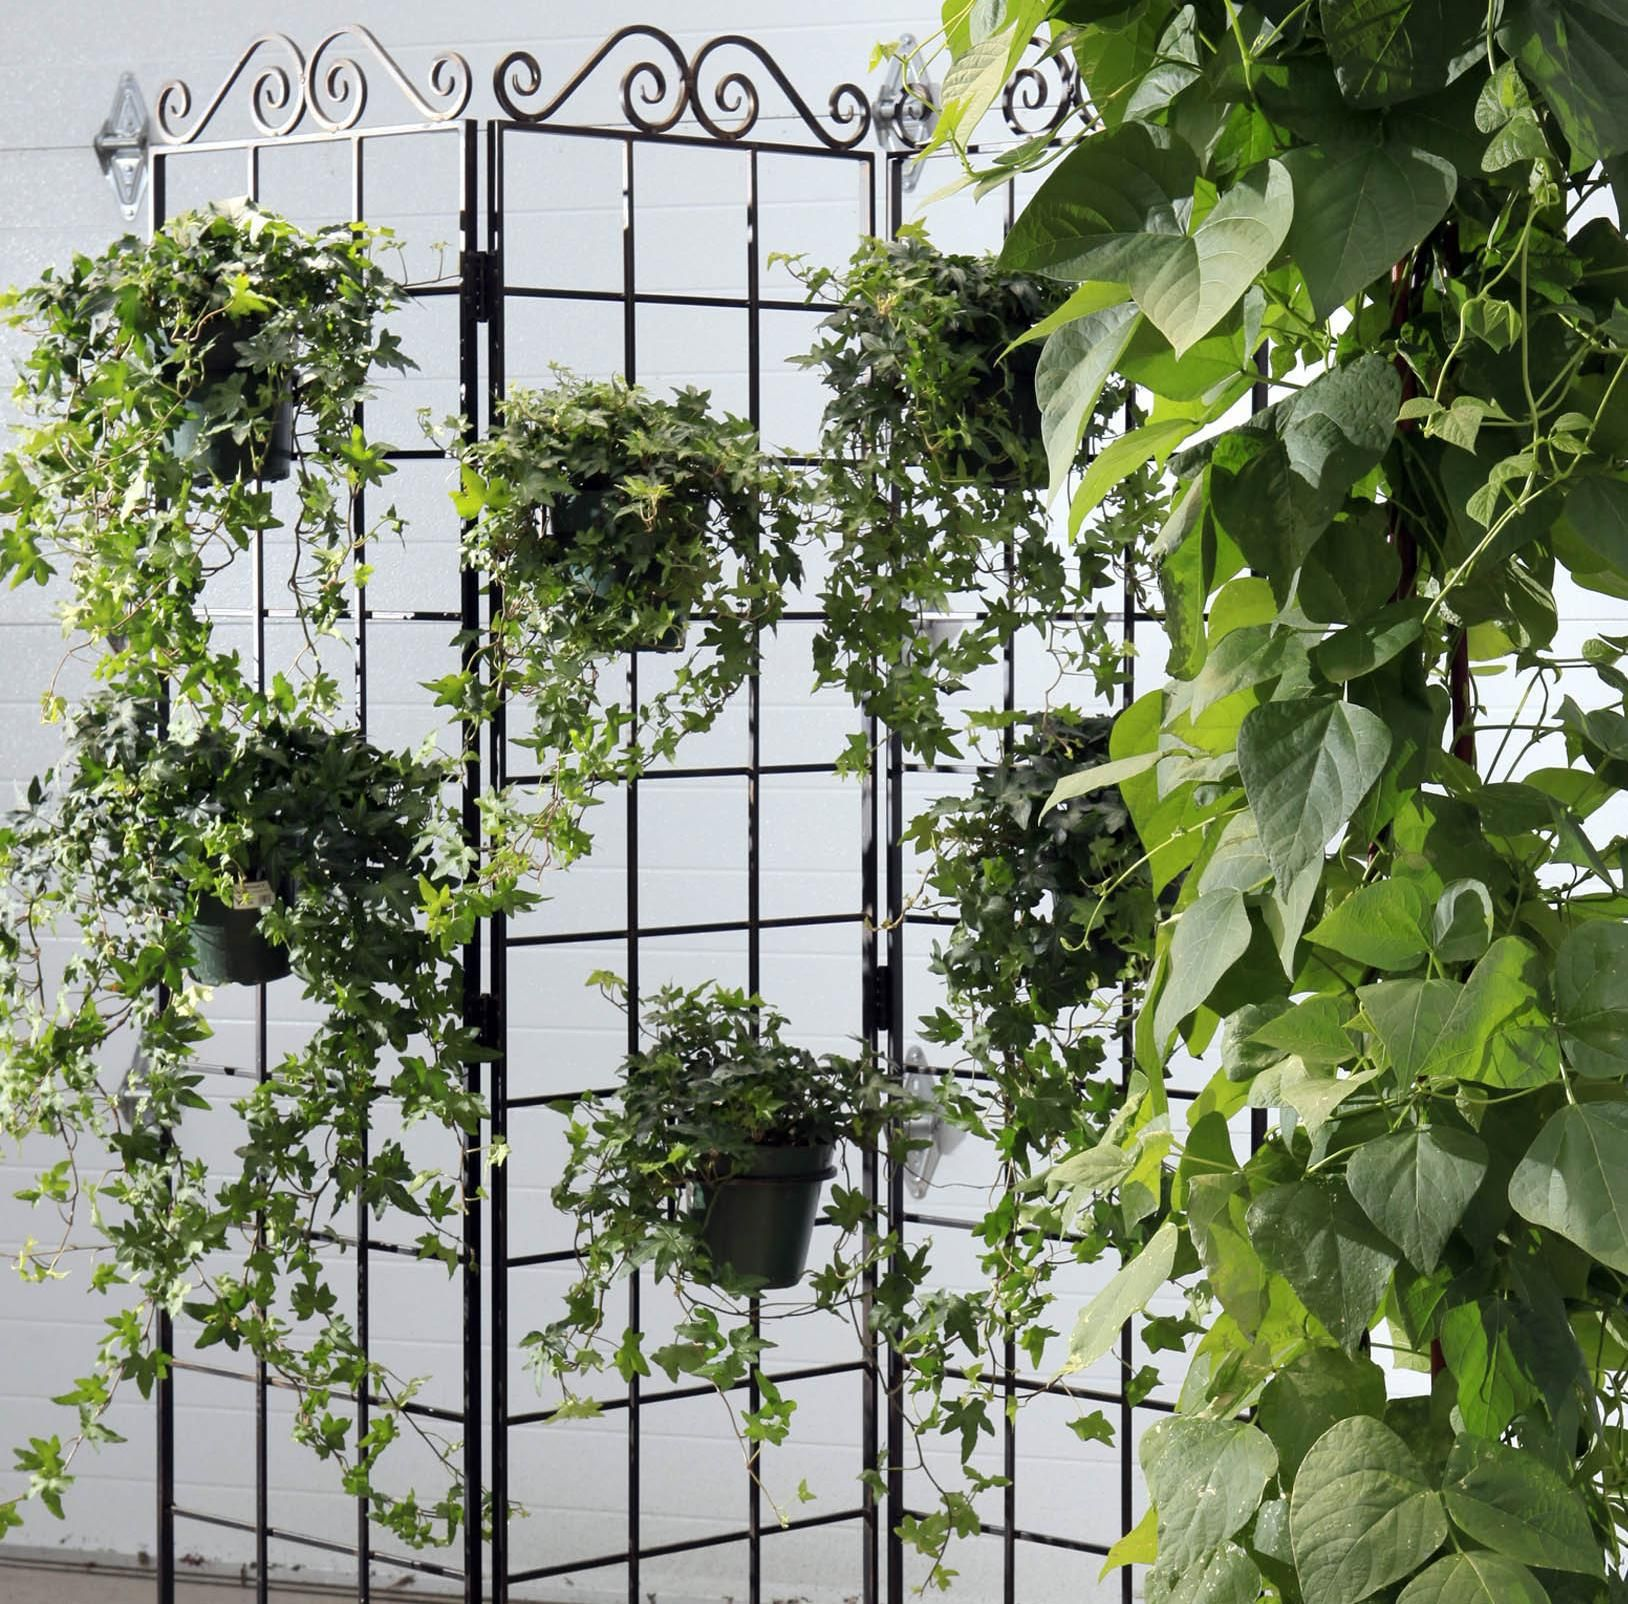 Ivy Hill Apartments: How Do You Grow English Ivy Indoors?